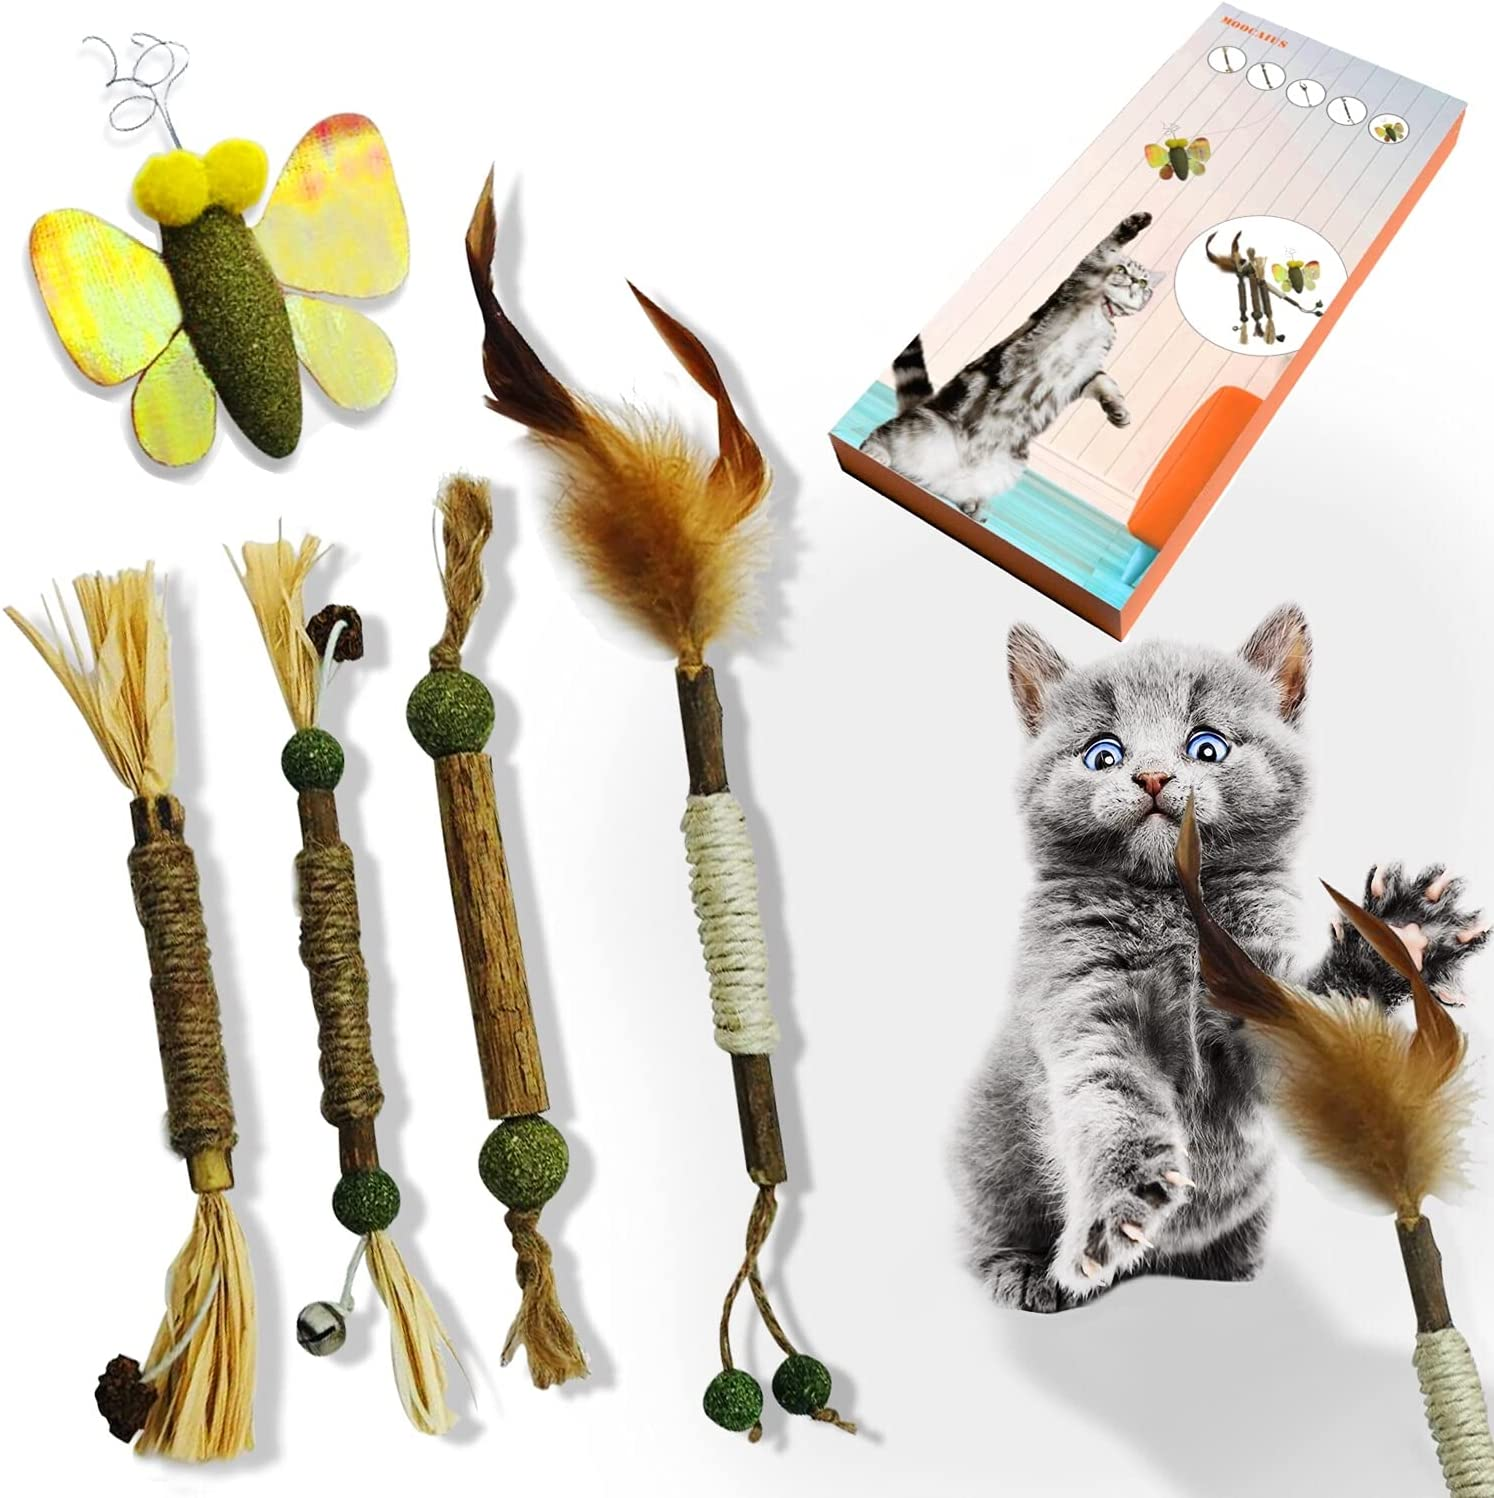 moocaius Free shipping / New 5-Piece Minneapolis Mall Set of Silvervine Sticks Indoor Mint Cat To and